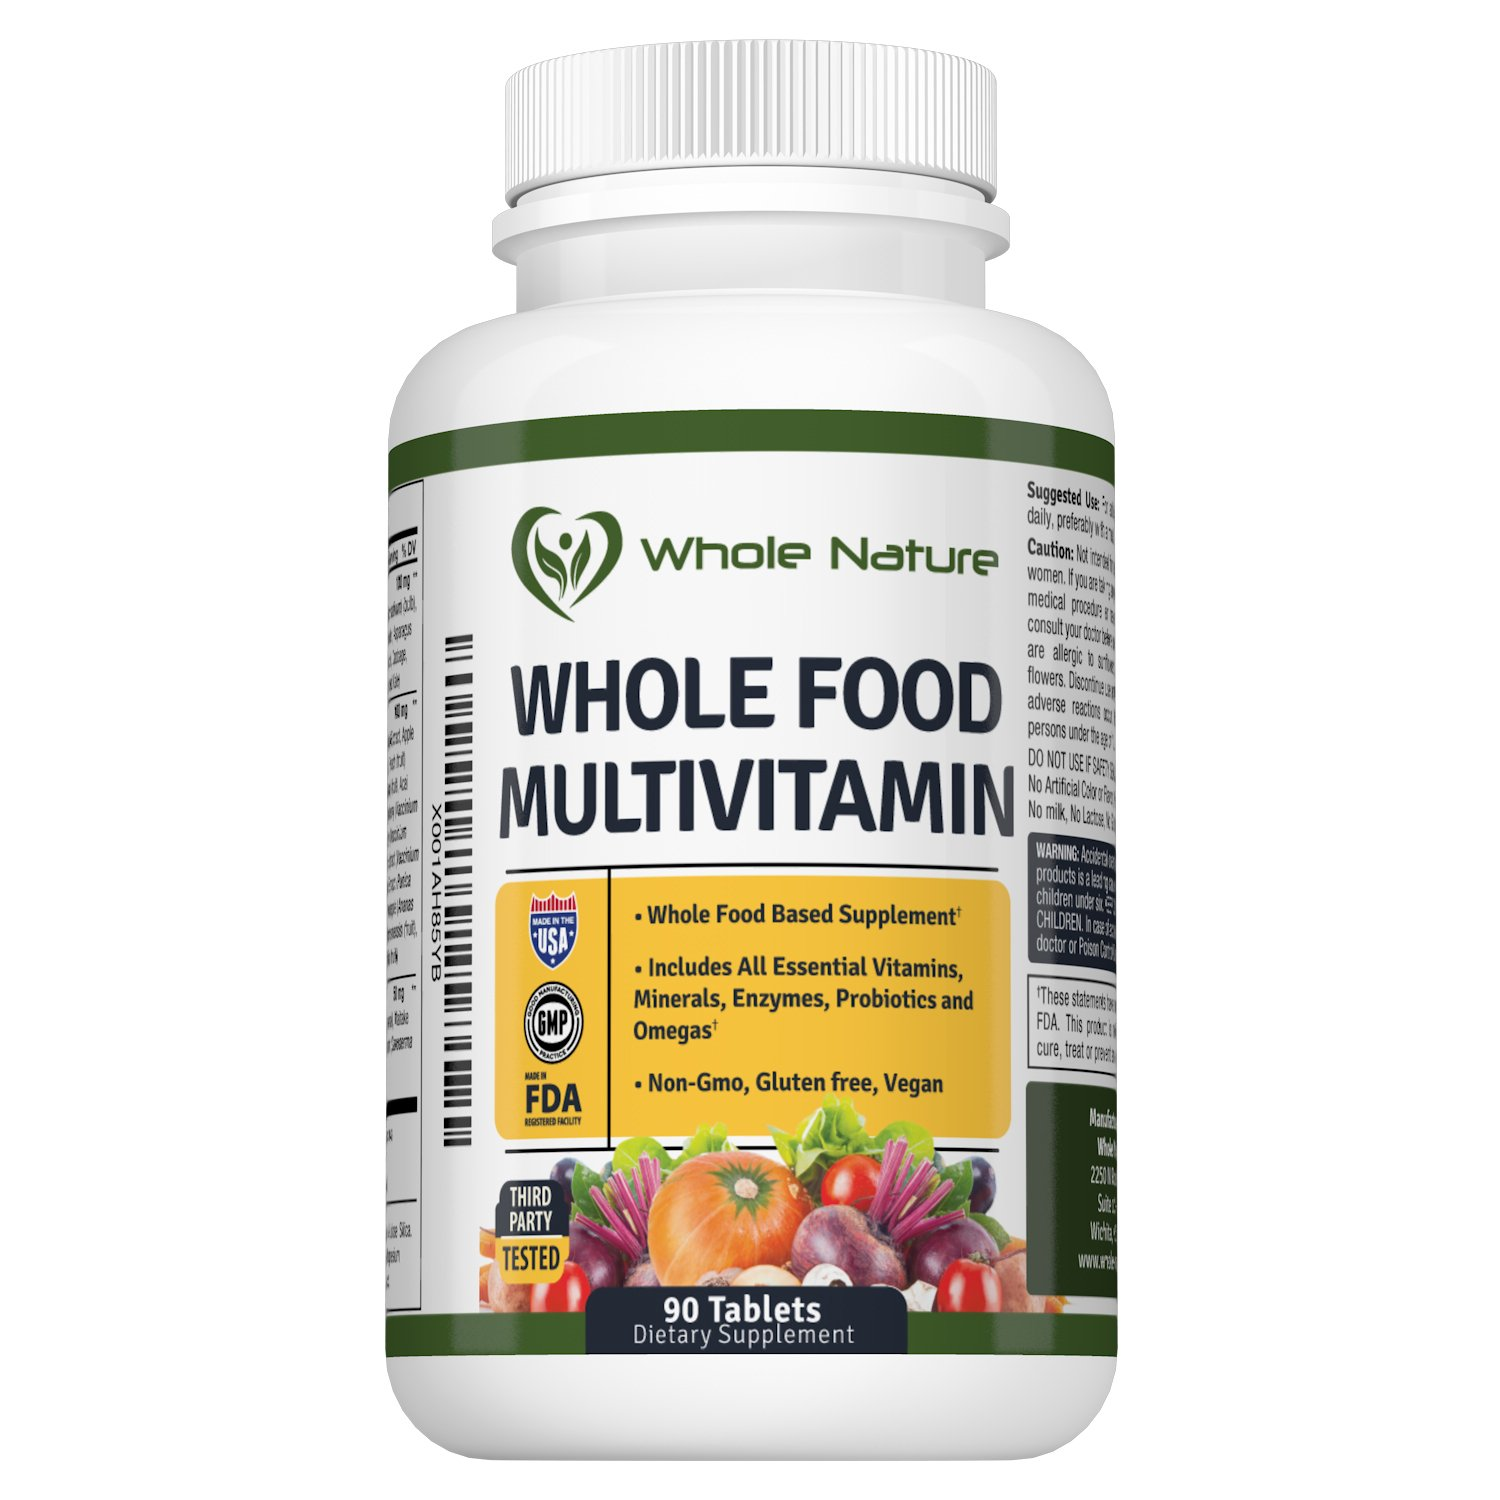 WHOLE NATURE Whole Food Multivitamin All Essential Vitamins and Minerals plus Digestive Enzymes, Probiotics and Omegas. For Men and Women. Non GMO